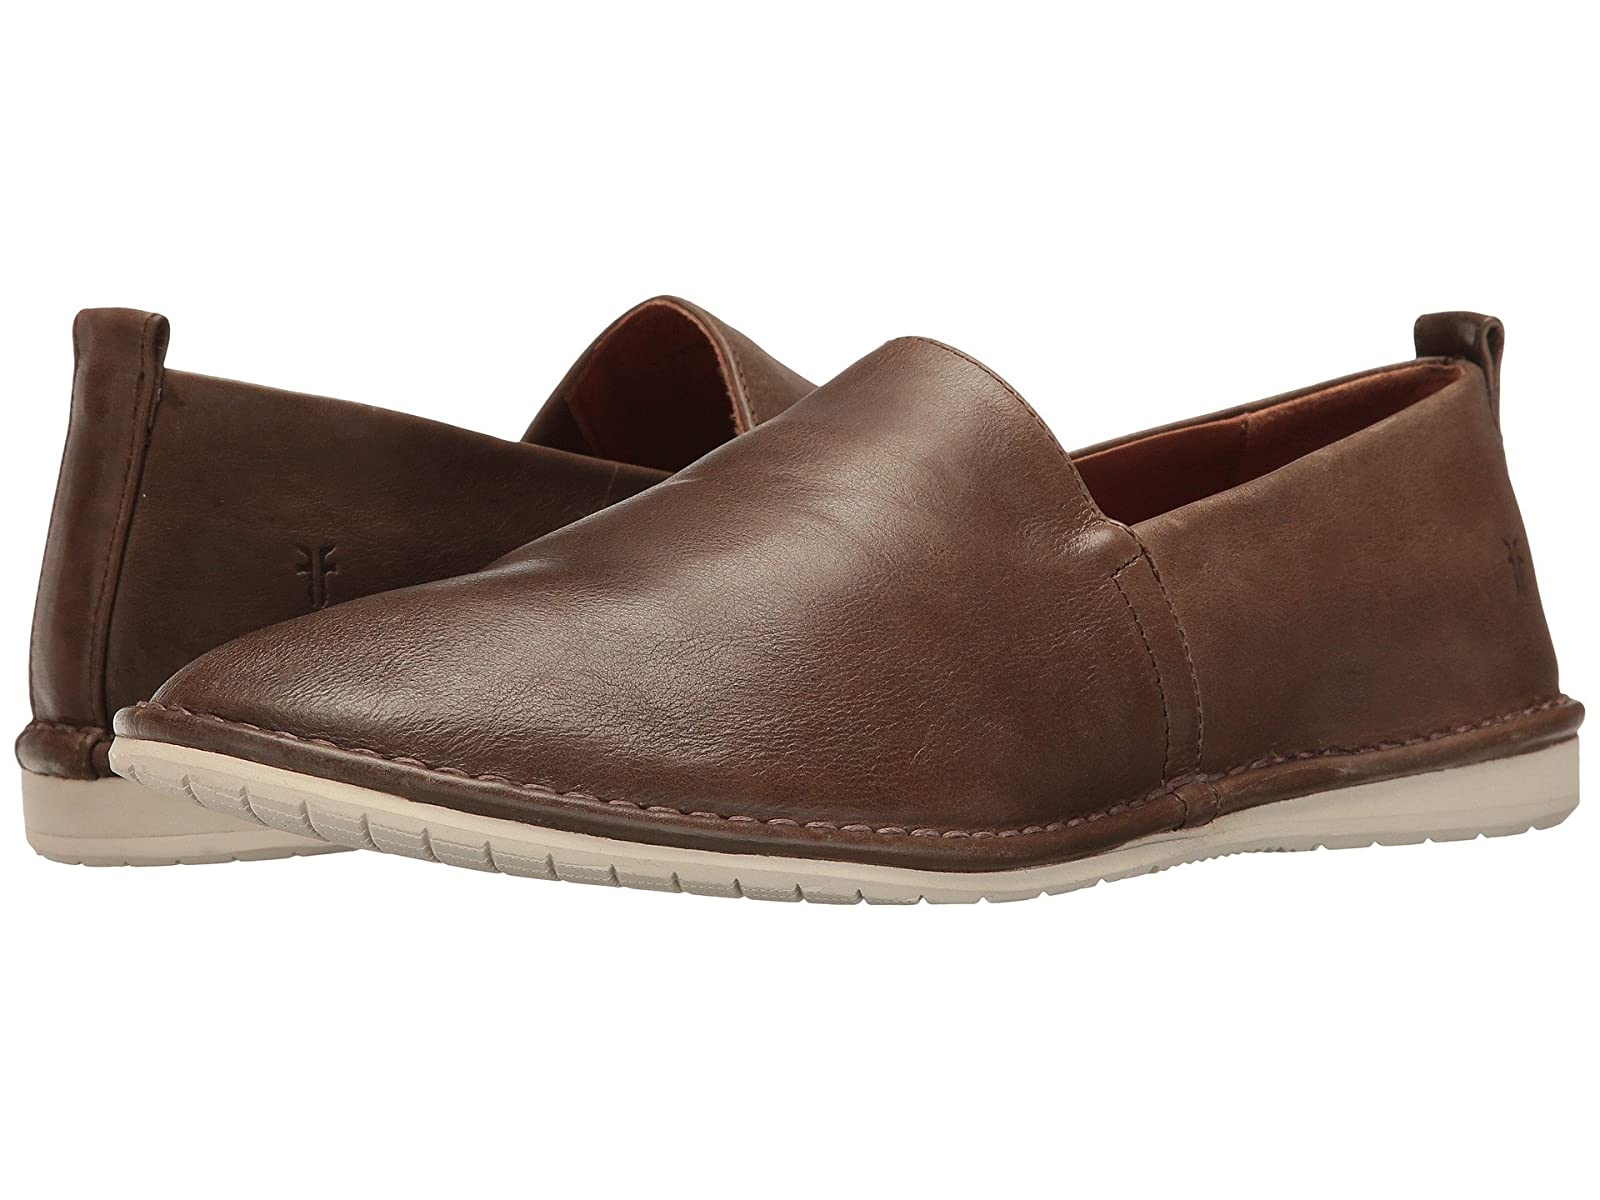 Frye Kyle Slip-OnCheap and distinctive eye-catching shoes